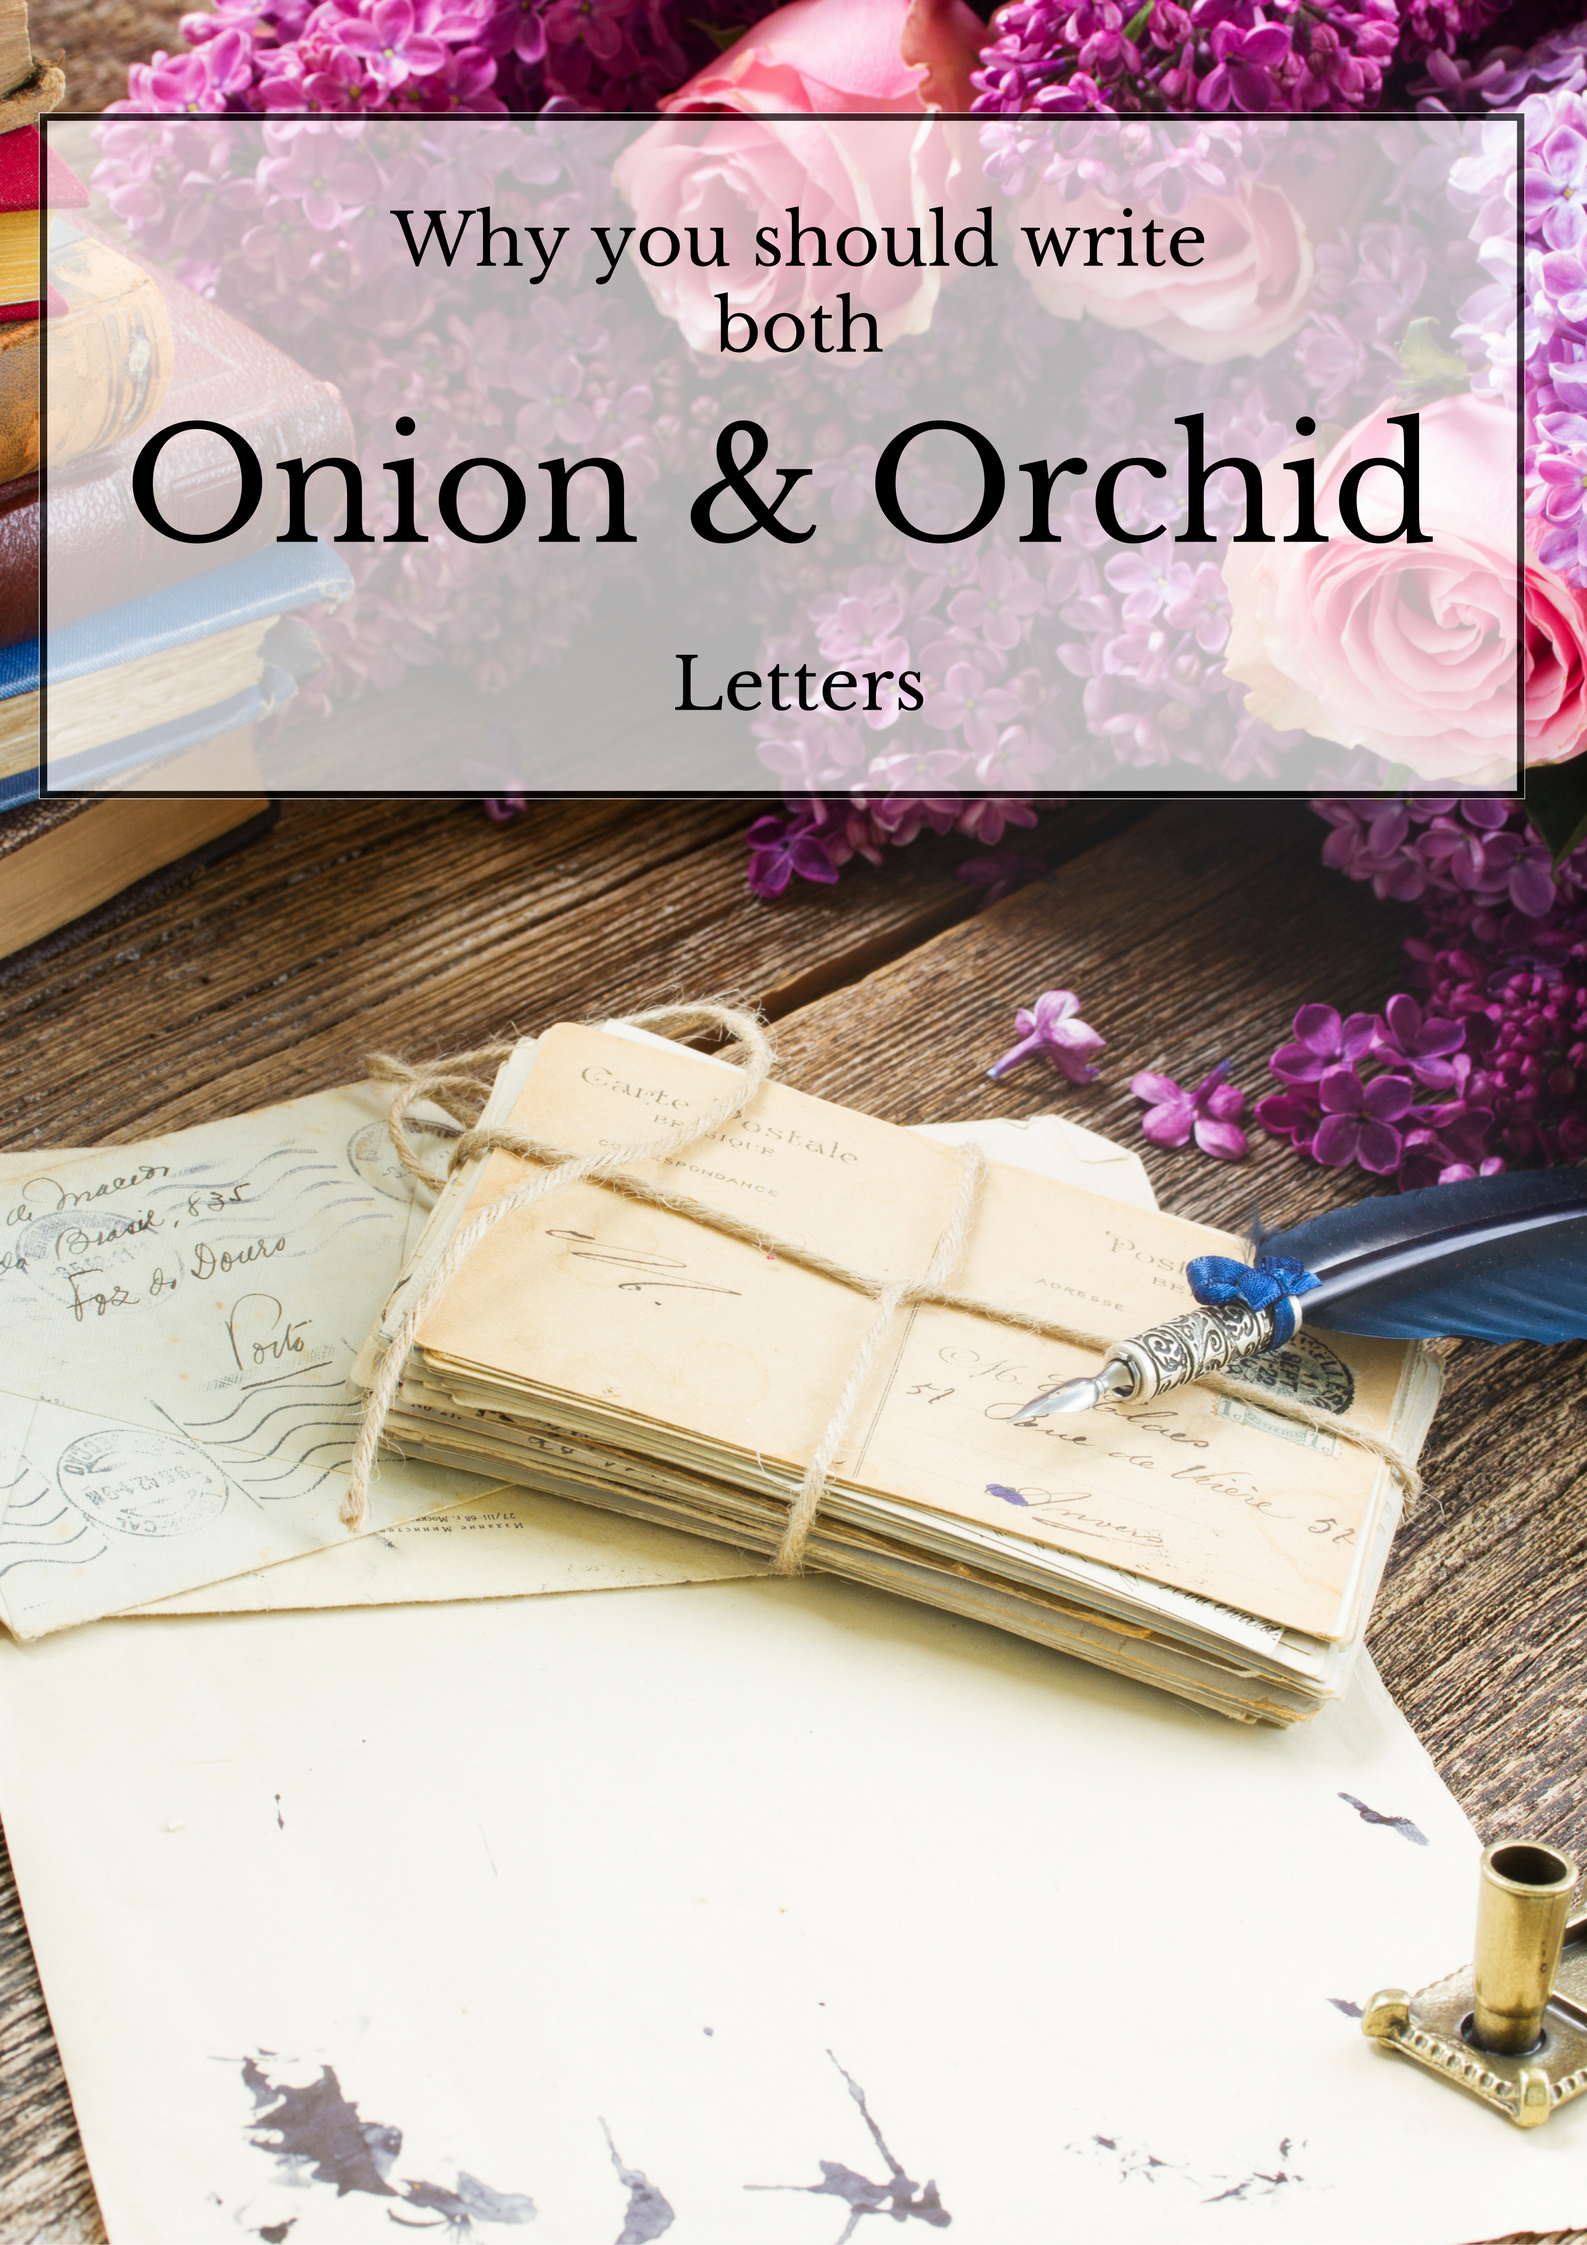 Why You Should Write Both Onion and Orchid Letters